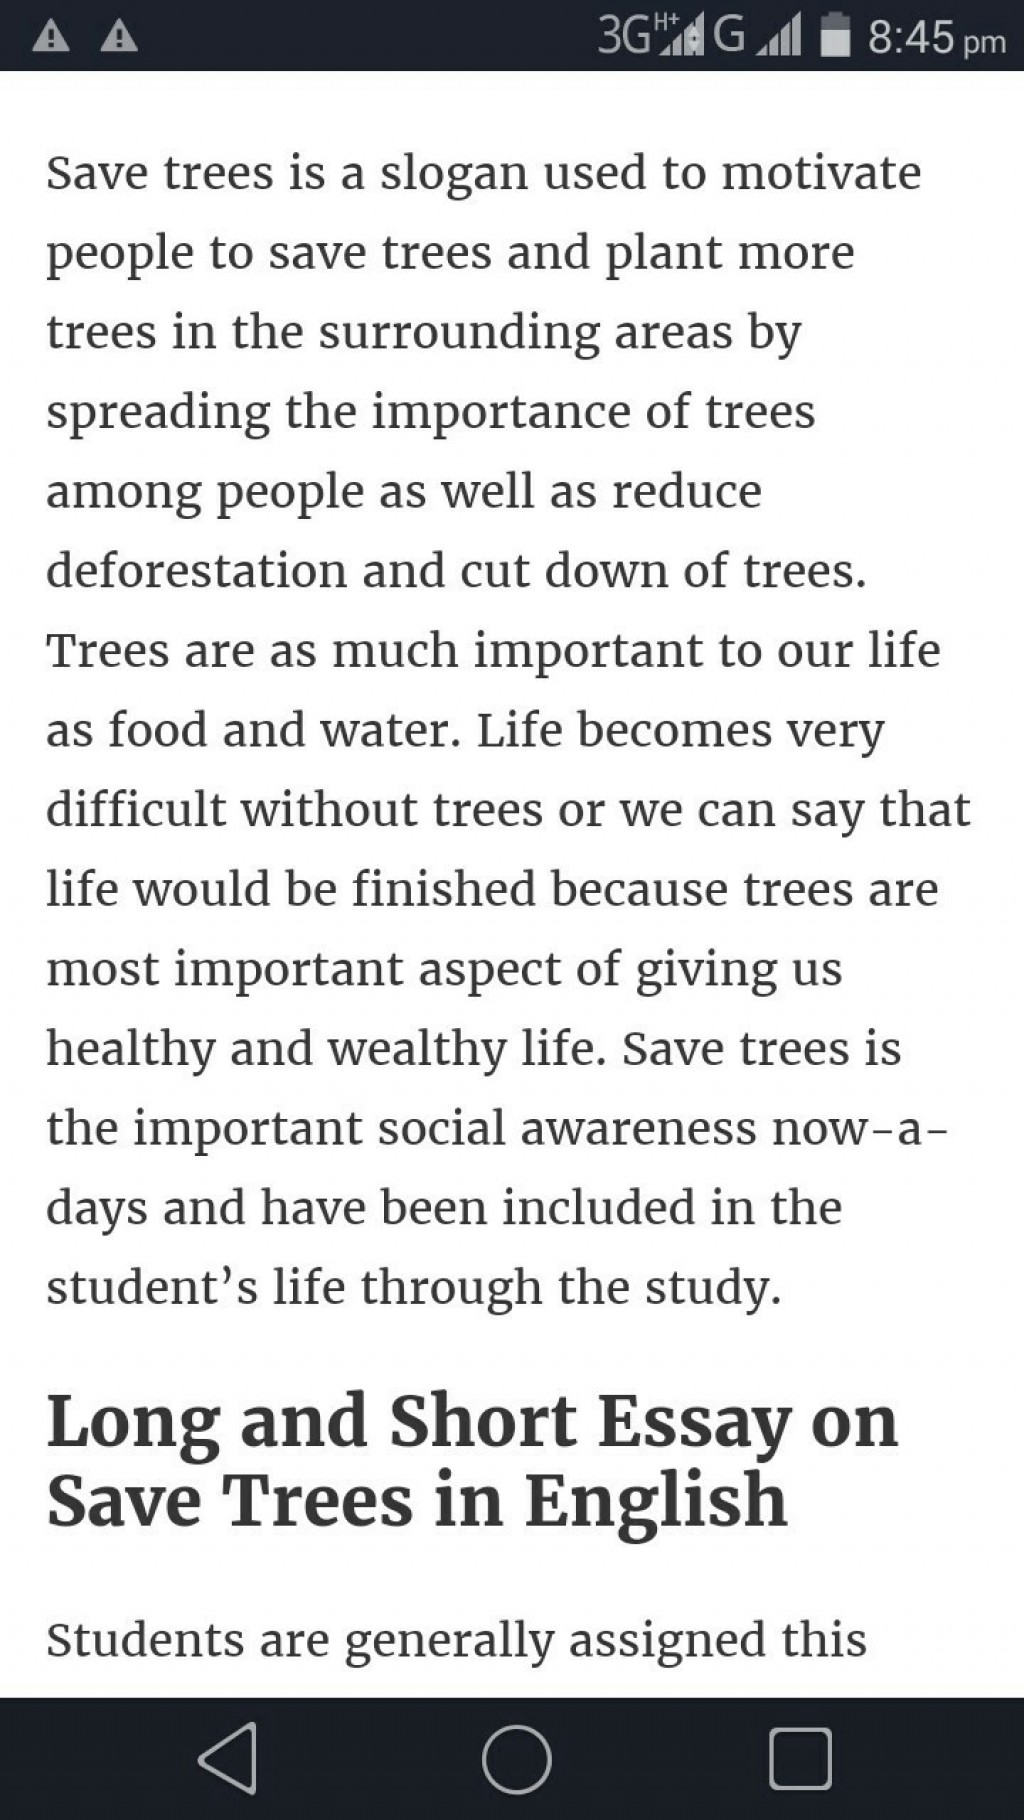 002 How Can We Save Trees Essay Marvelous To In Hindi Telugu Large